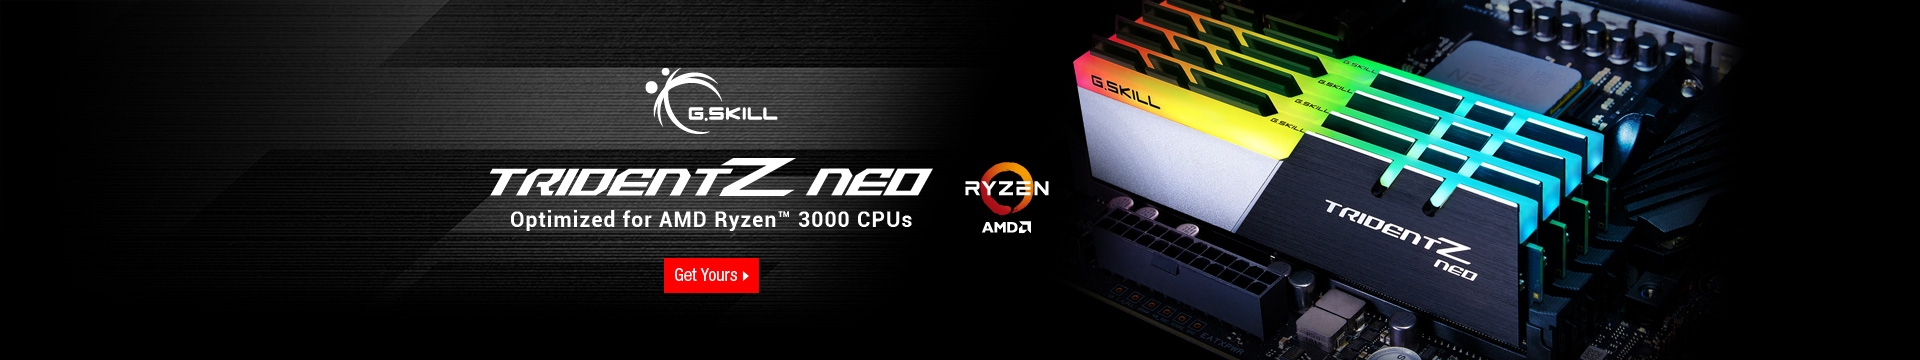 Optimized for AMD Ryzen 3000 CPUs